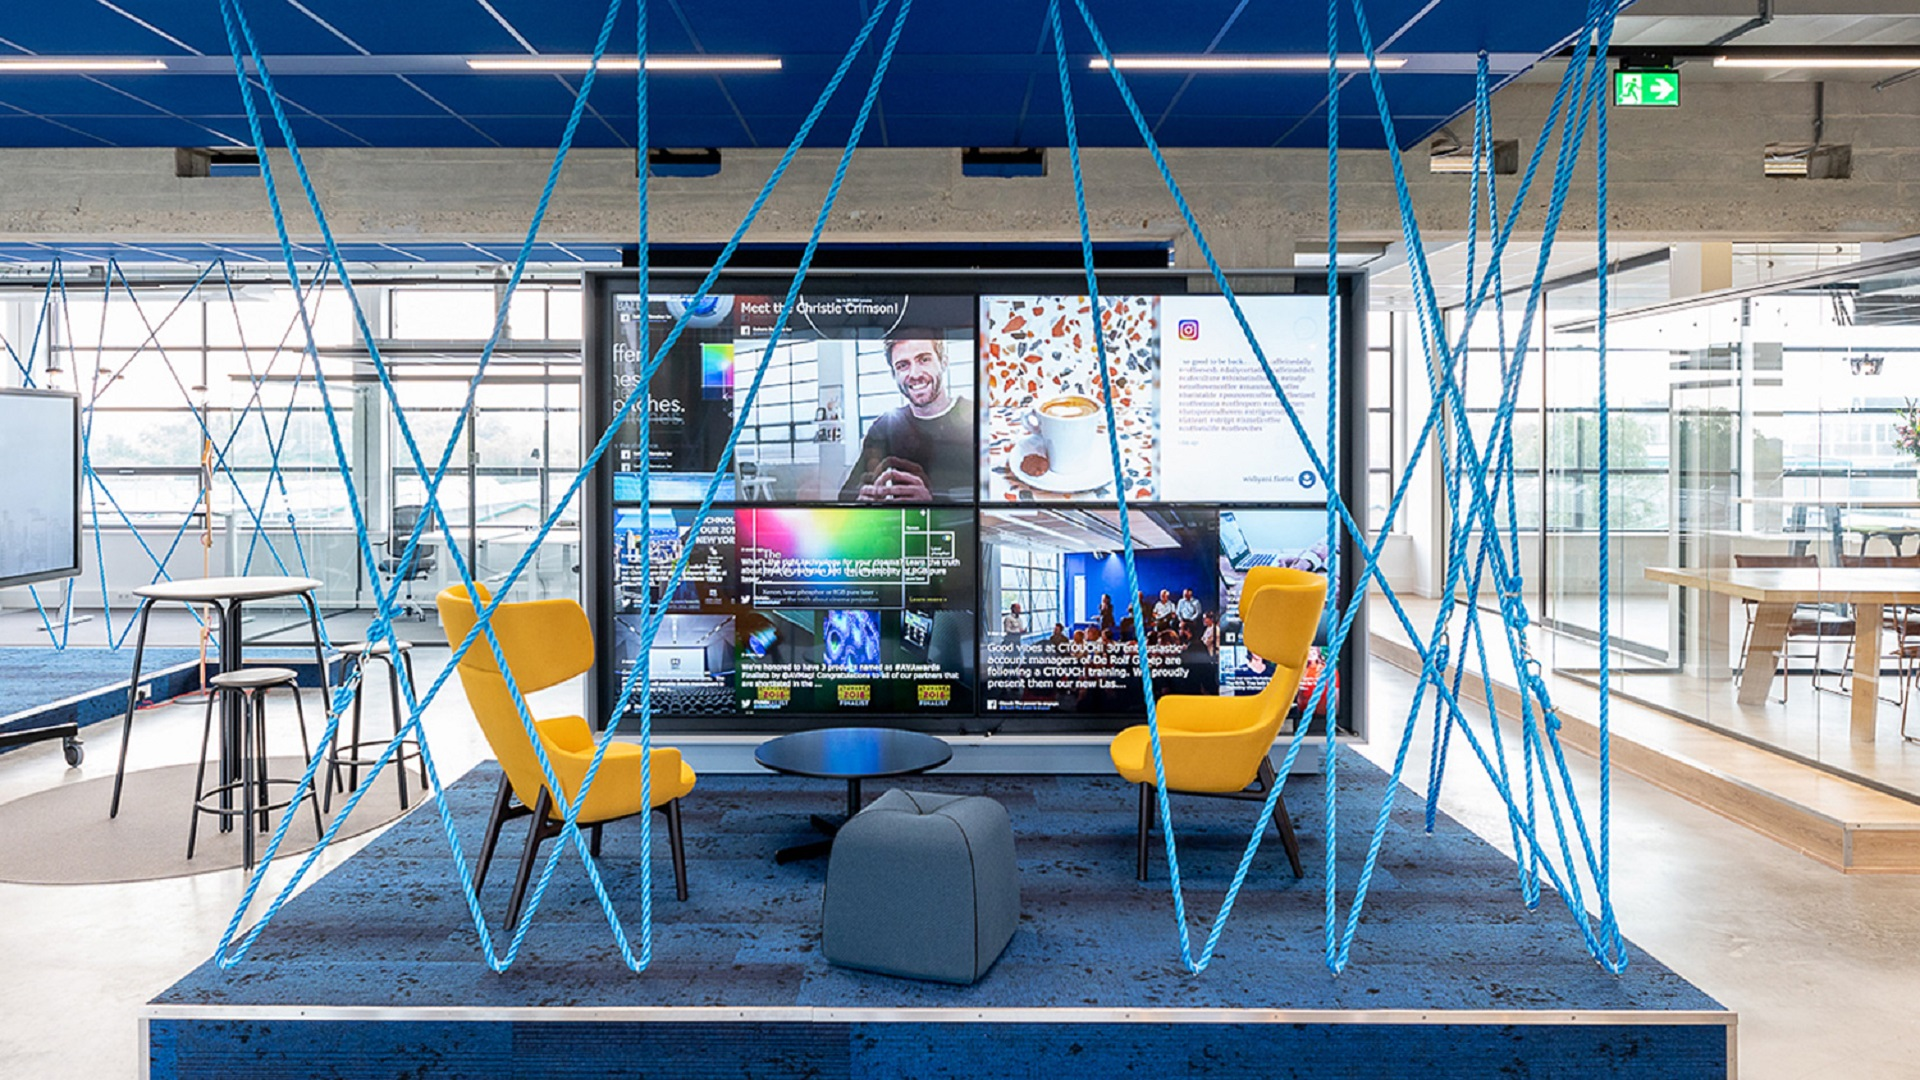 Sahara Benelux's New Offices Boasts Several Matrox-Inspired Designs